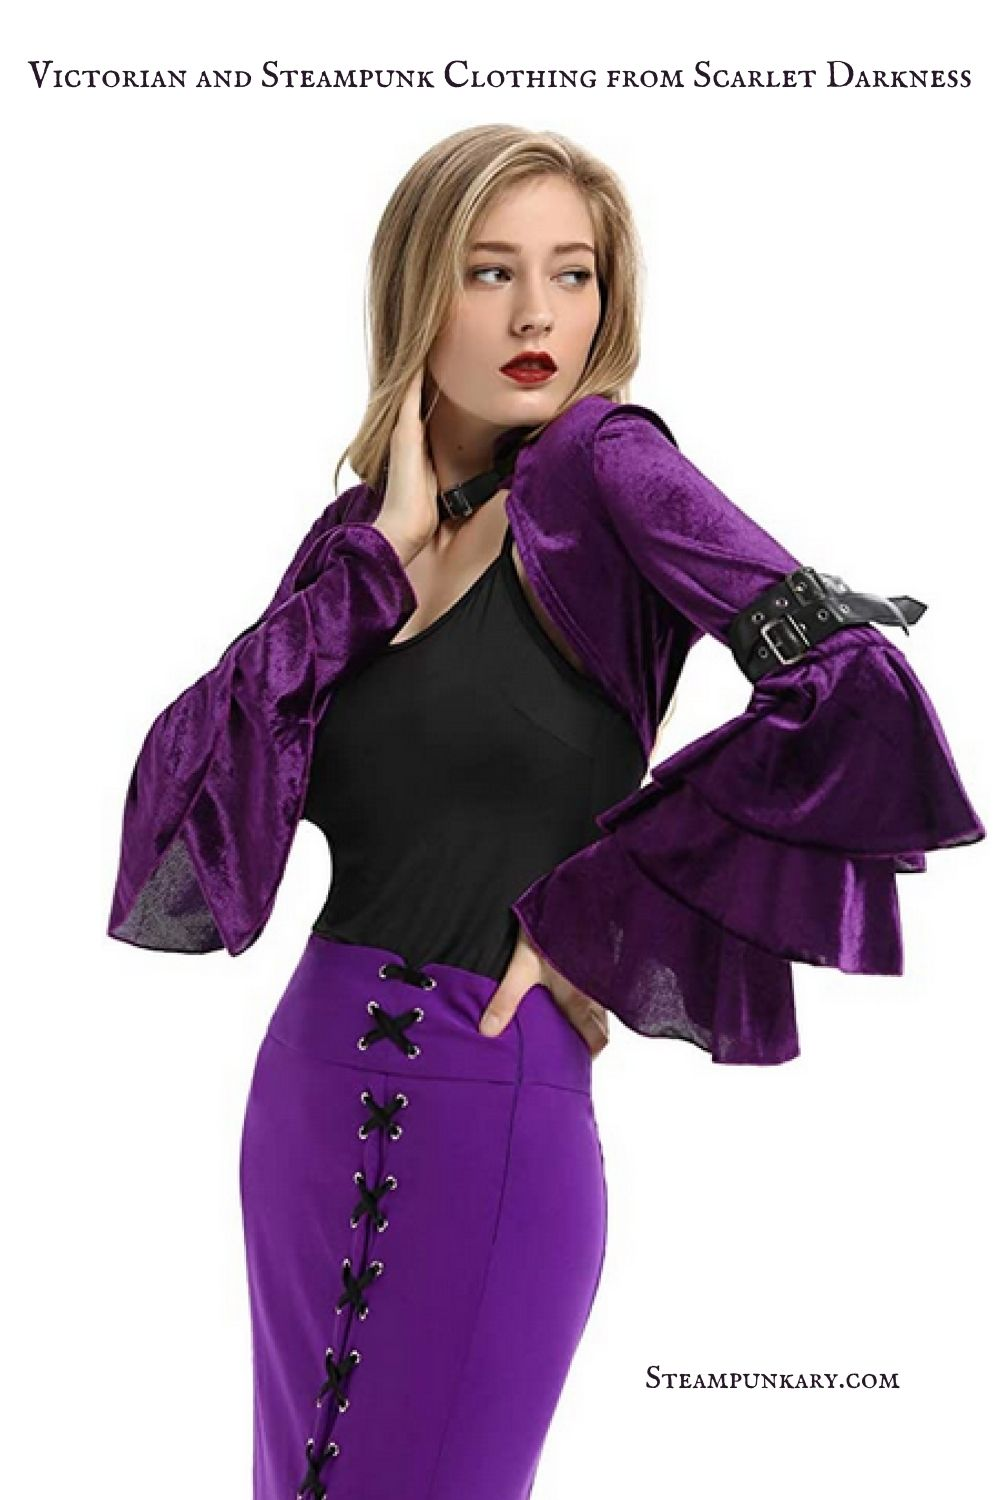 Victorian and Steampunk Clothing from Scarlet Darkness